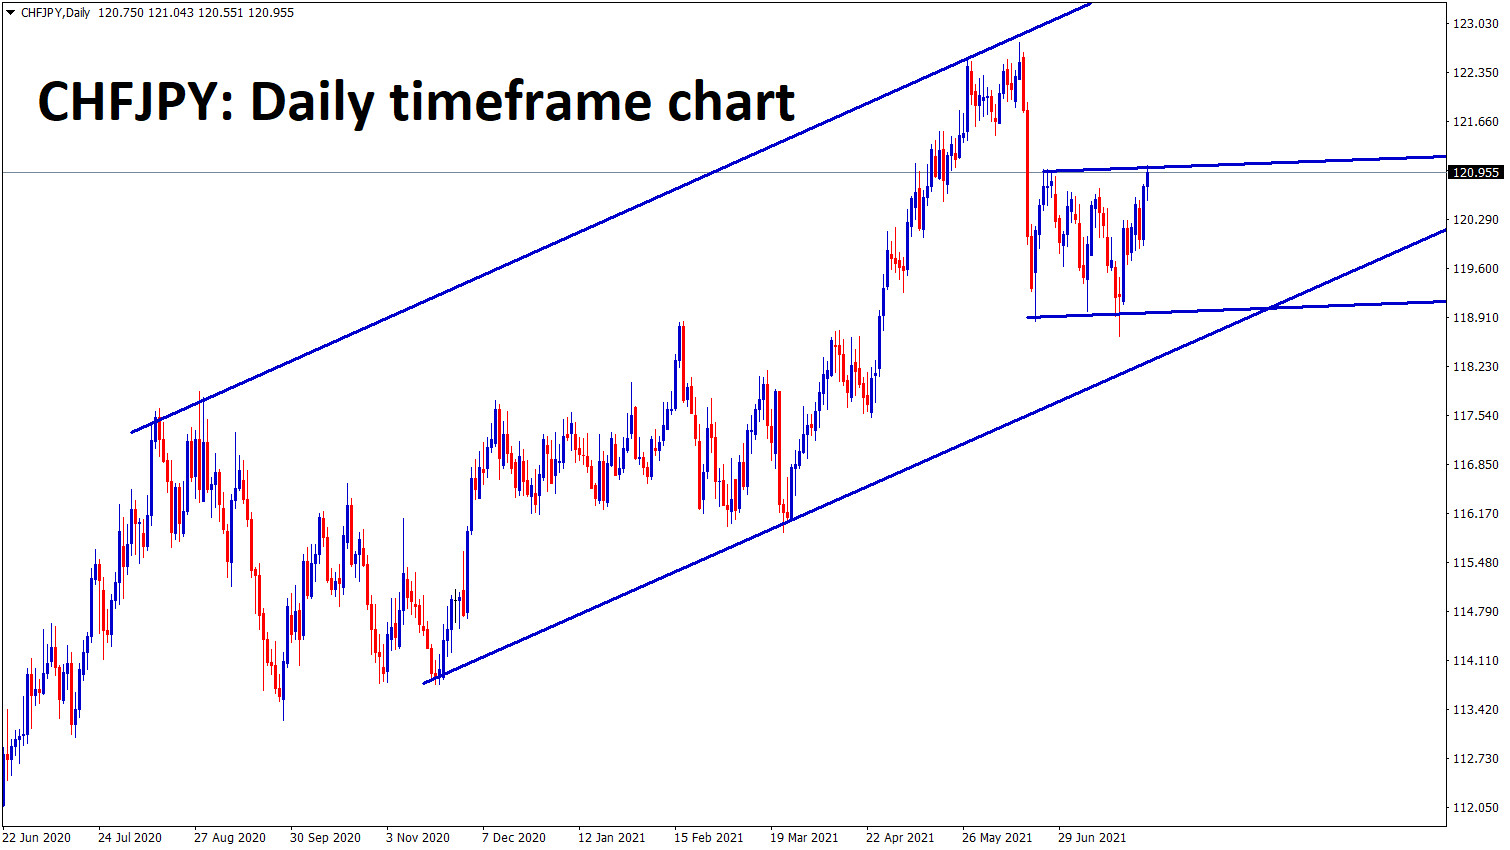 CHFJPY is moving up and down between the specific price ranges in an Uptrend